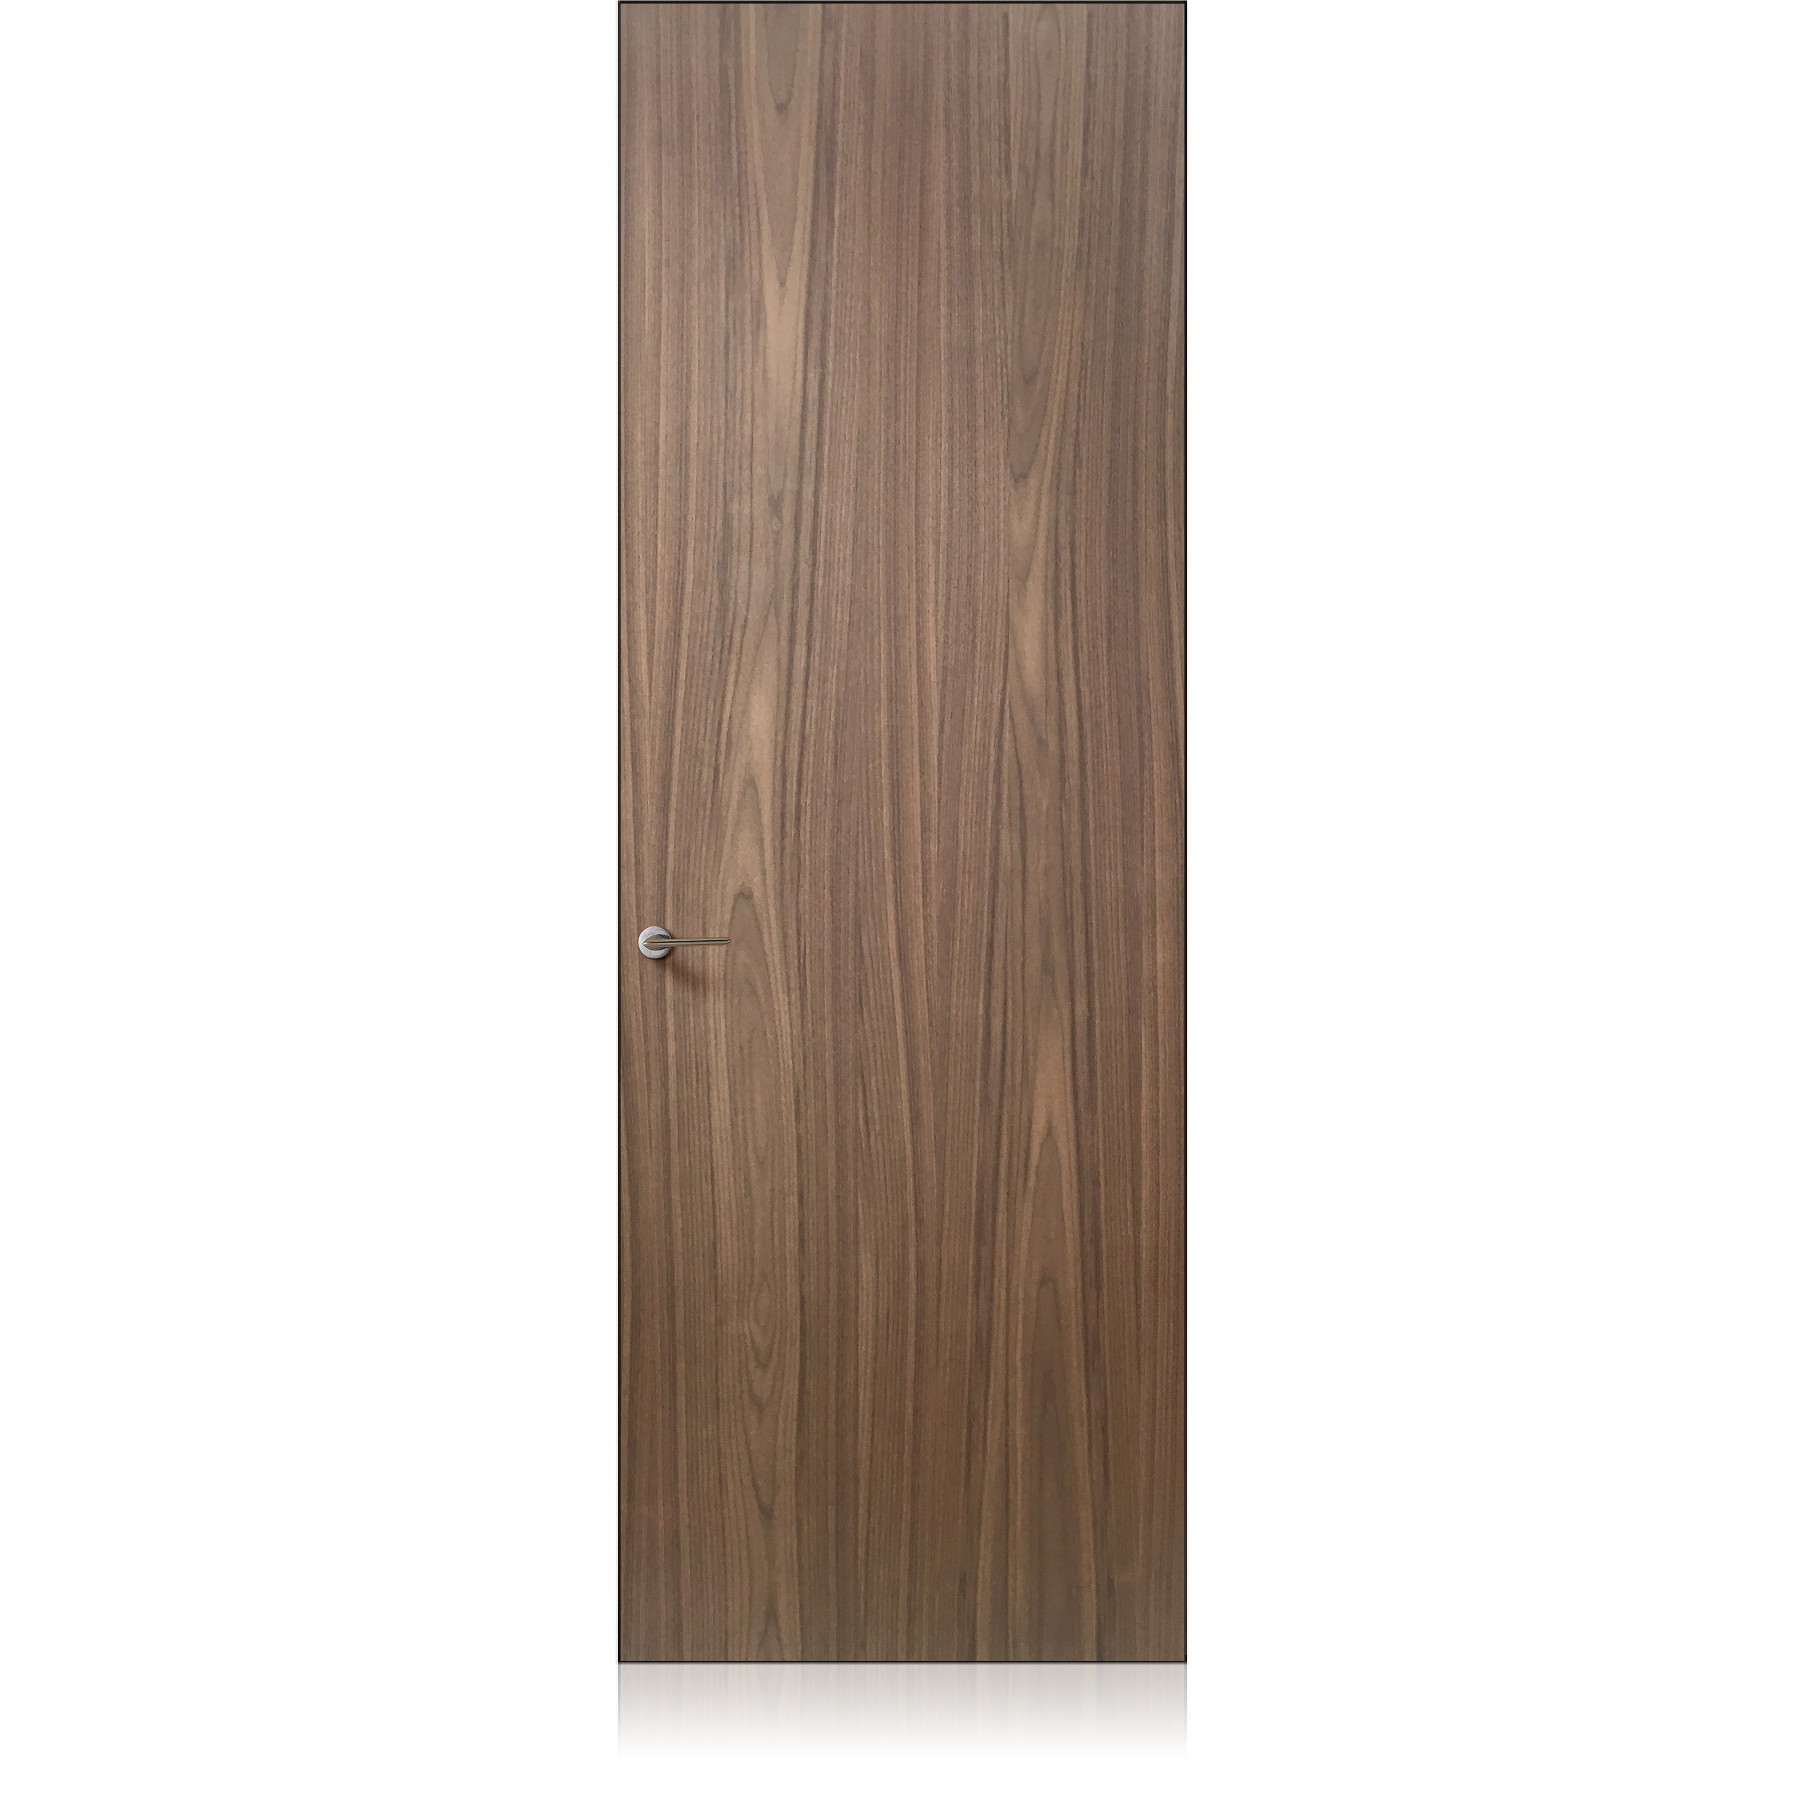 Exitlyne Zero noce canaletto natural touch door